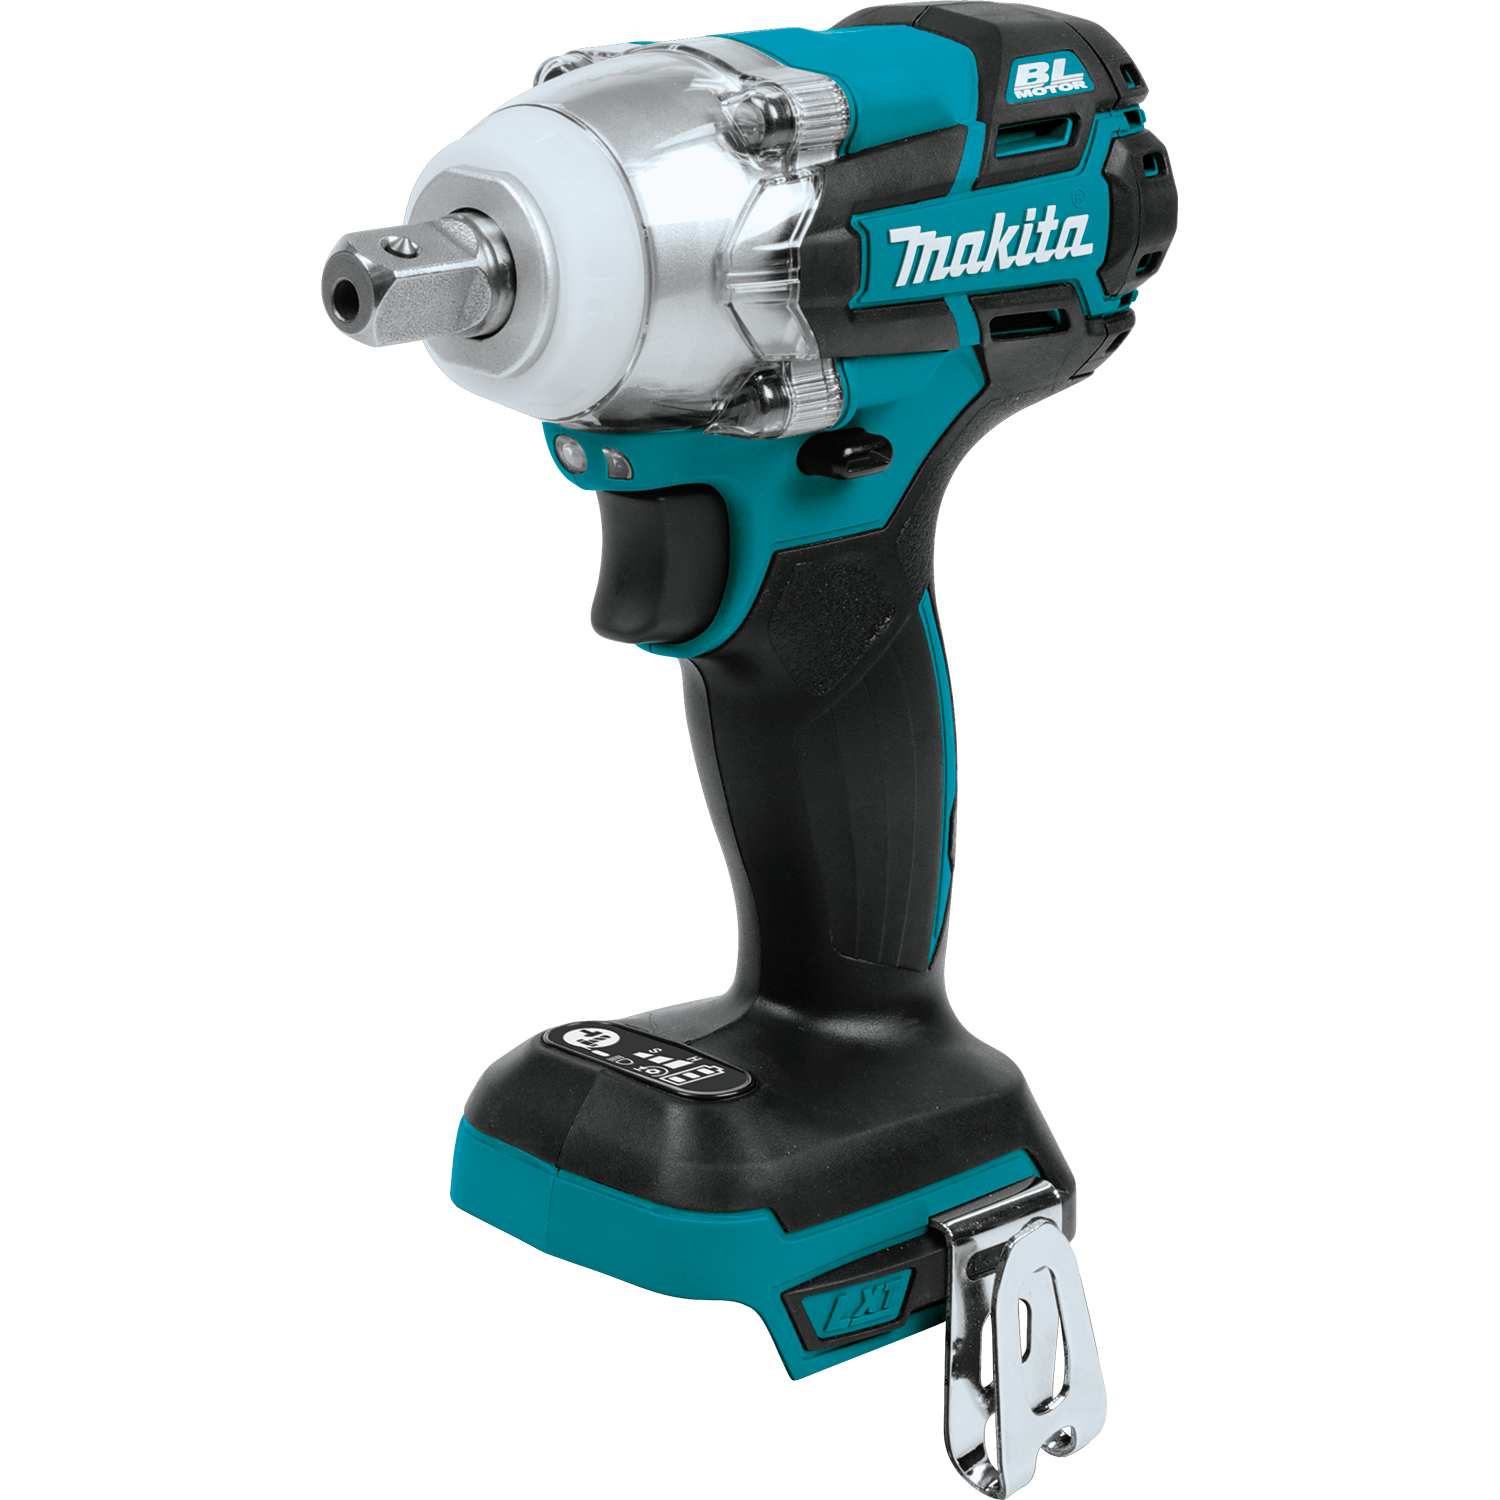 makita usa product details xwt11z rh makitatools com Makita 18V Impact Driver makita 18v impact driver spare parts